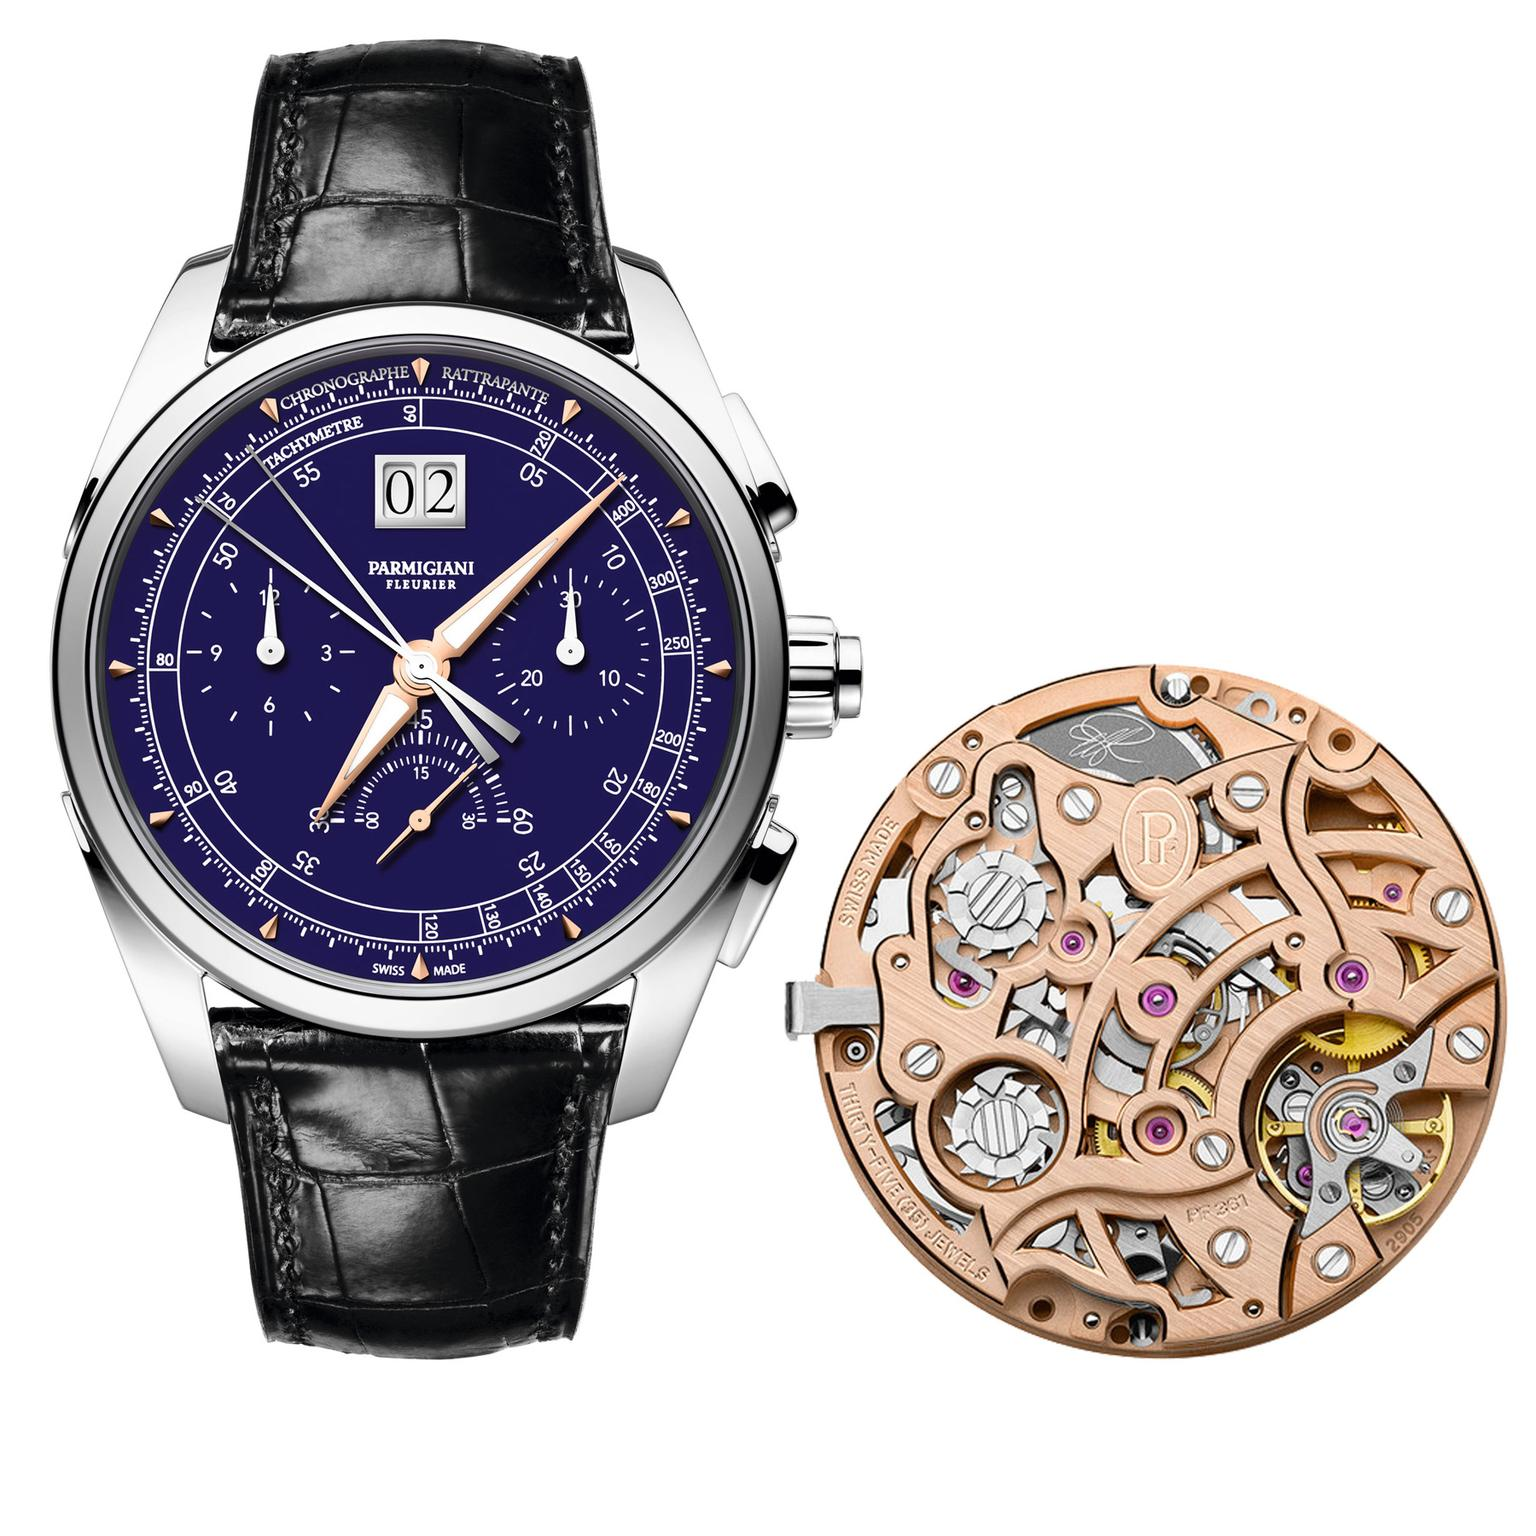 Parmigiani Tonda Chronor Anniversaire watch